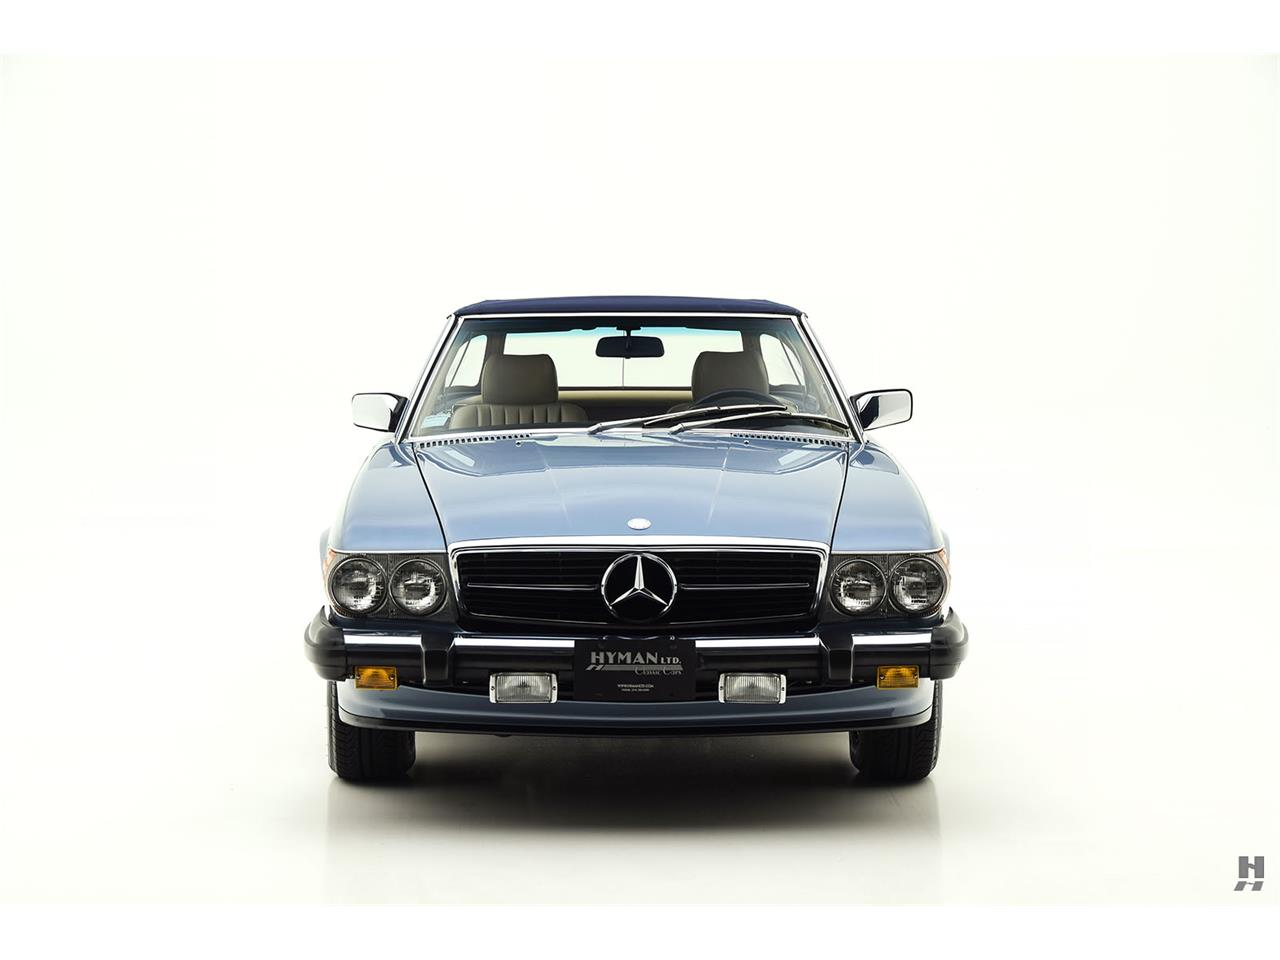 Large Picture of 1987 Mercedes-Benz 560SL located in Missouri Offered by Hyman Ltd. Classic Cars - LENL